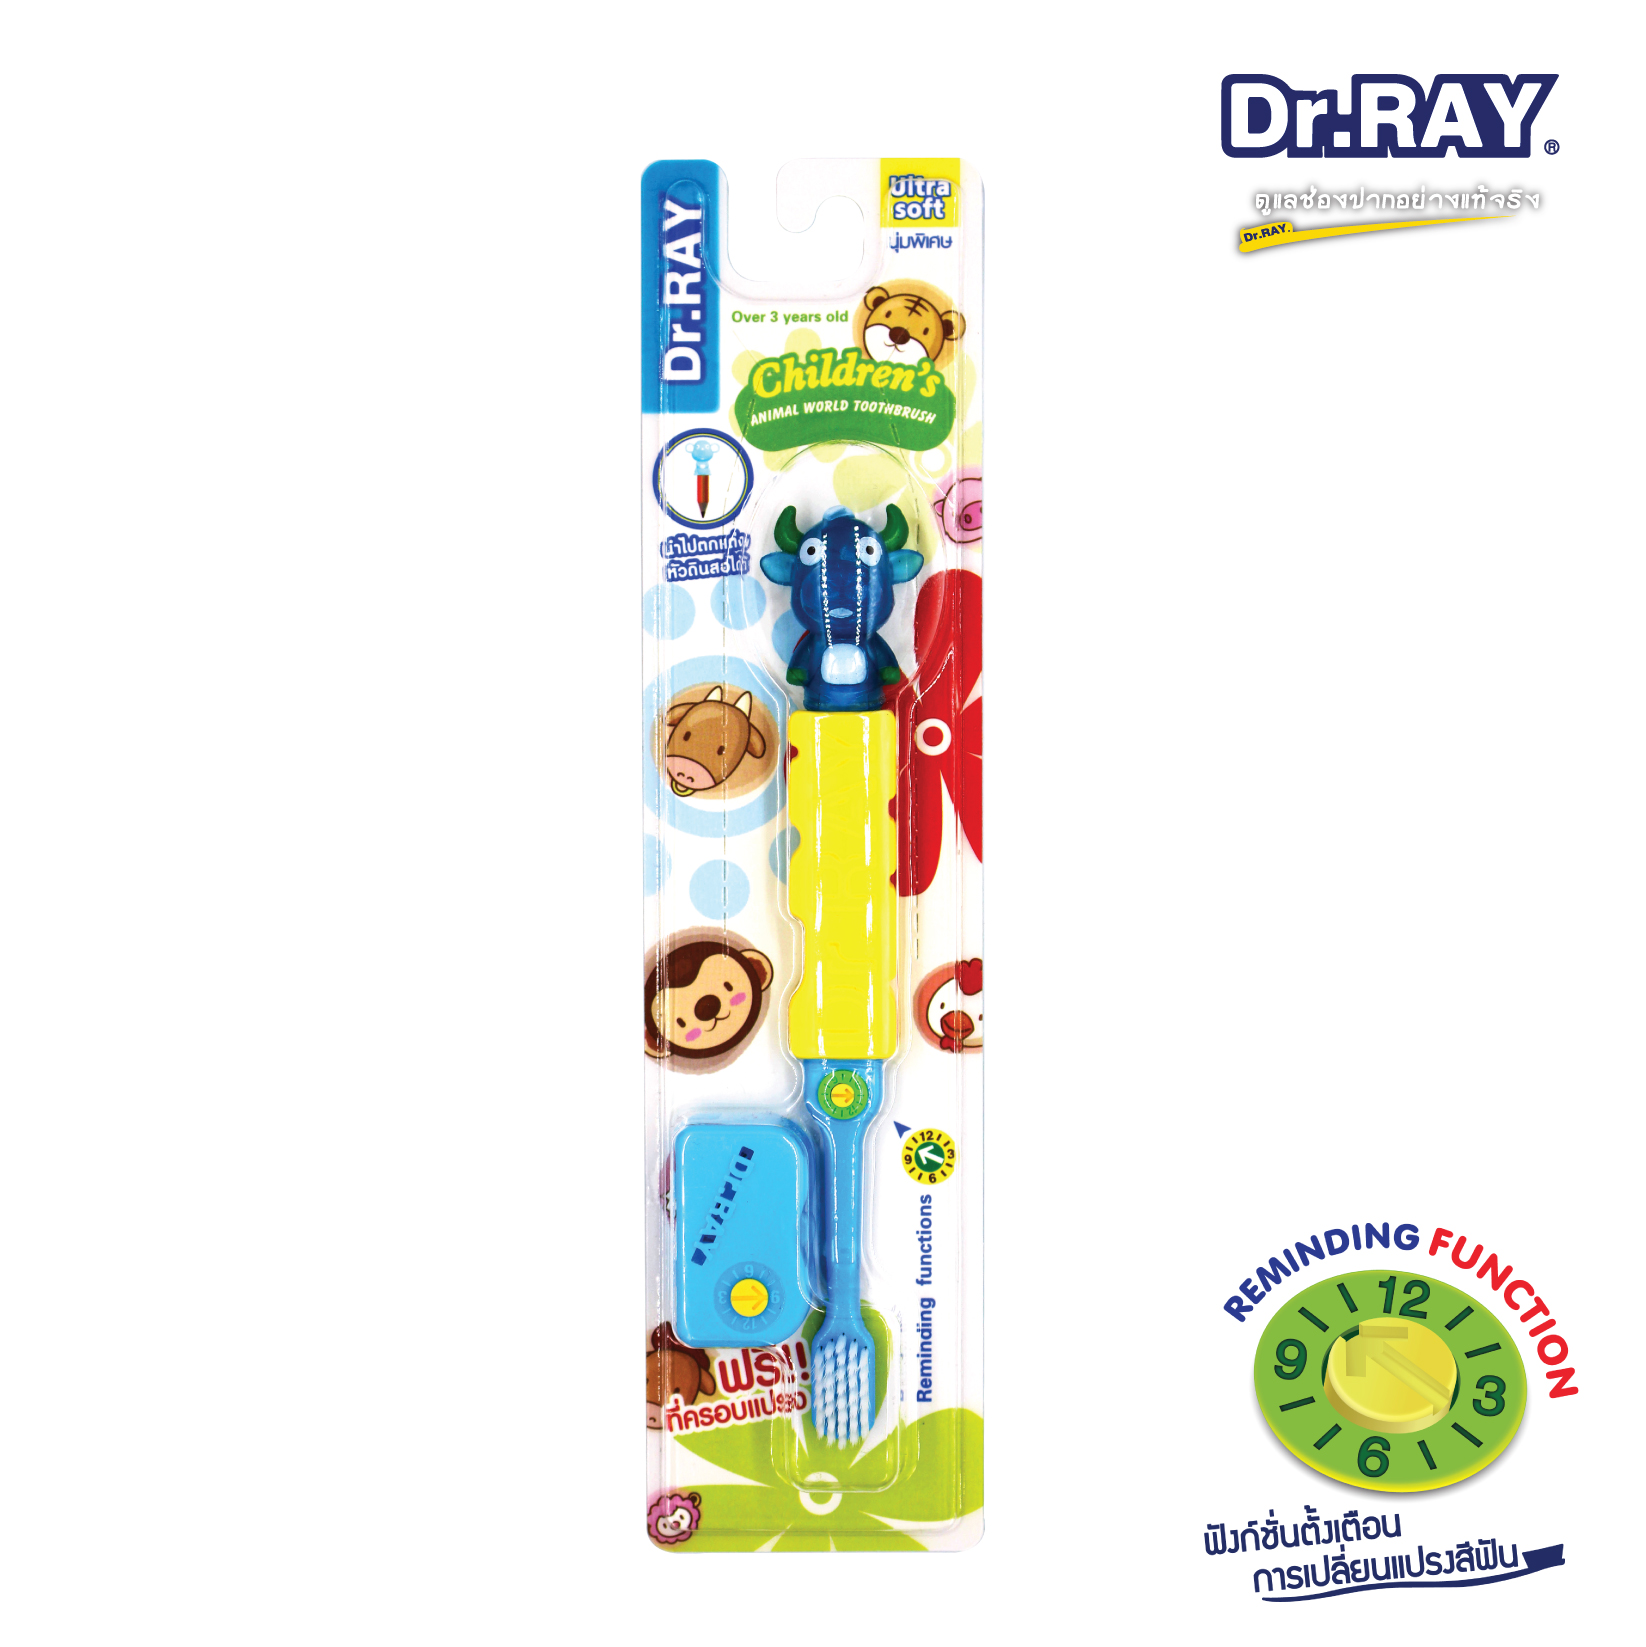 Dr.RAY_Lazada Online_Product Template_Animal Kids_1-4-2020_01-Product Single 395x395px